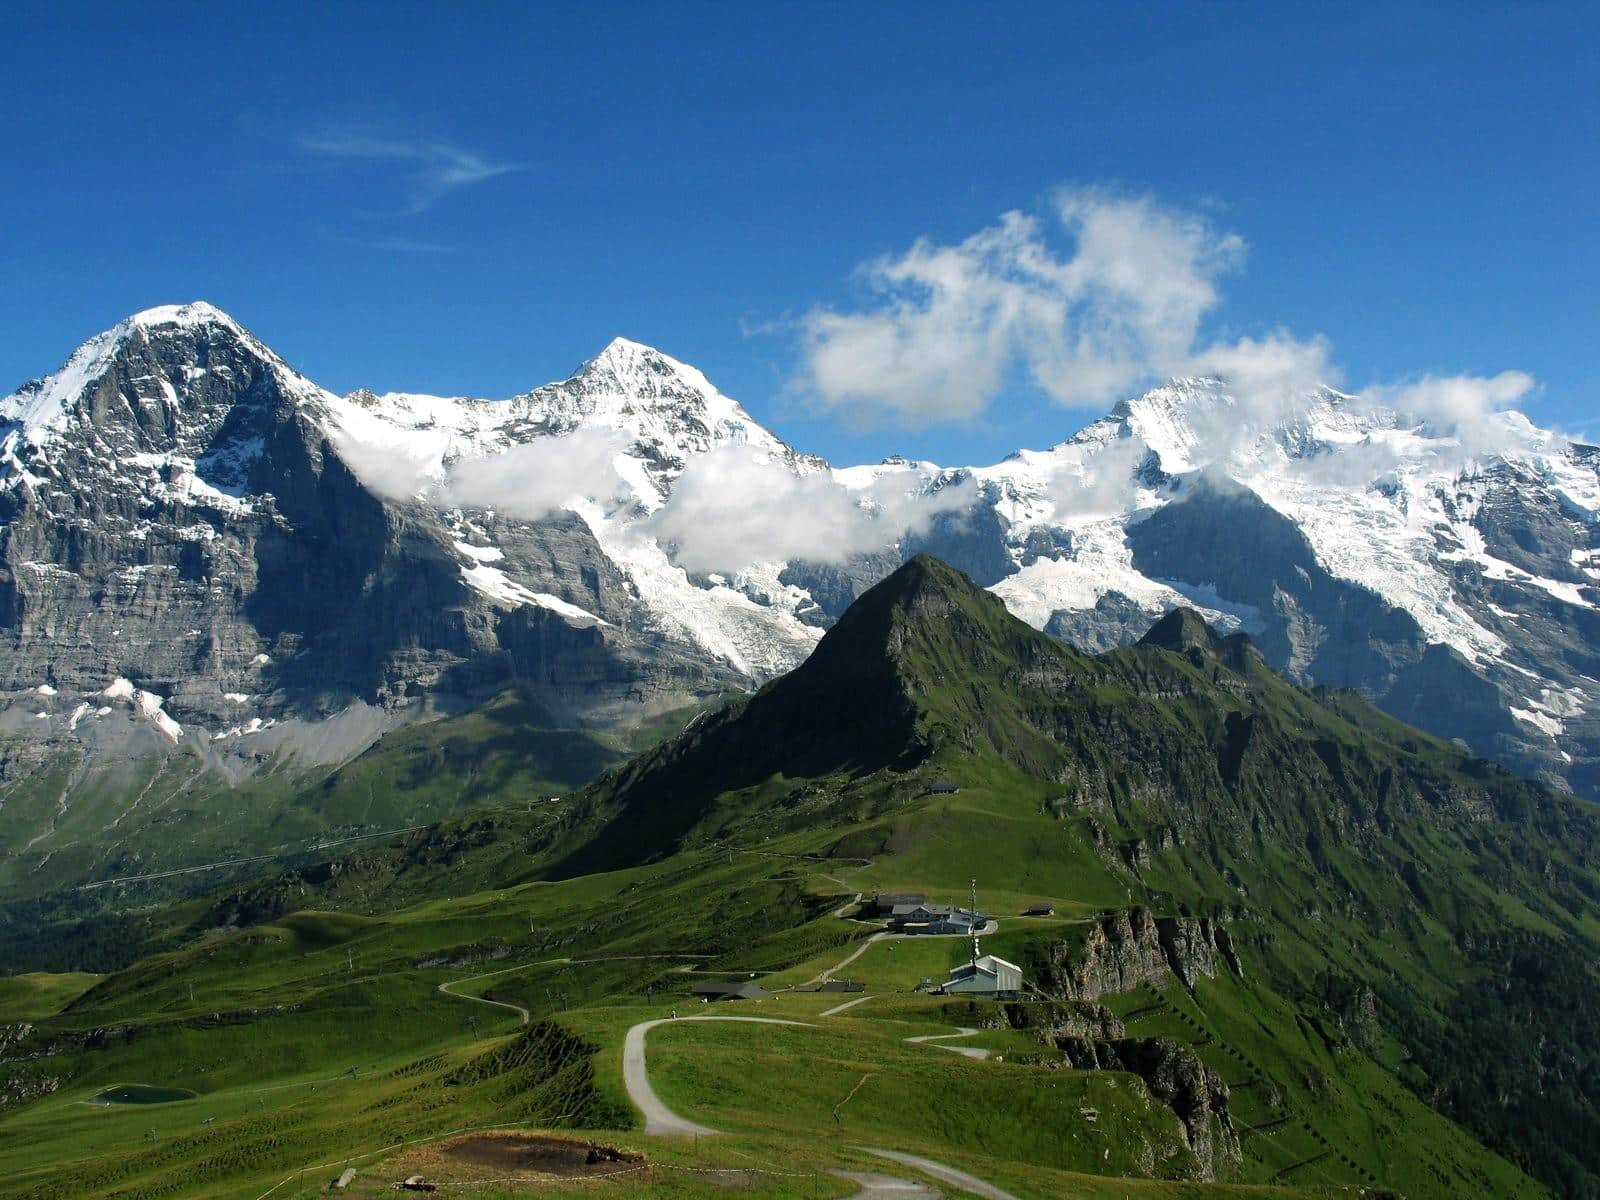 Eiger, Mönch and Jungfrau 4-day ascent. 4-day trip. IFMGA